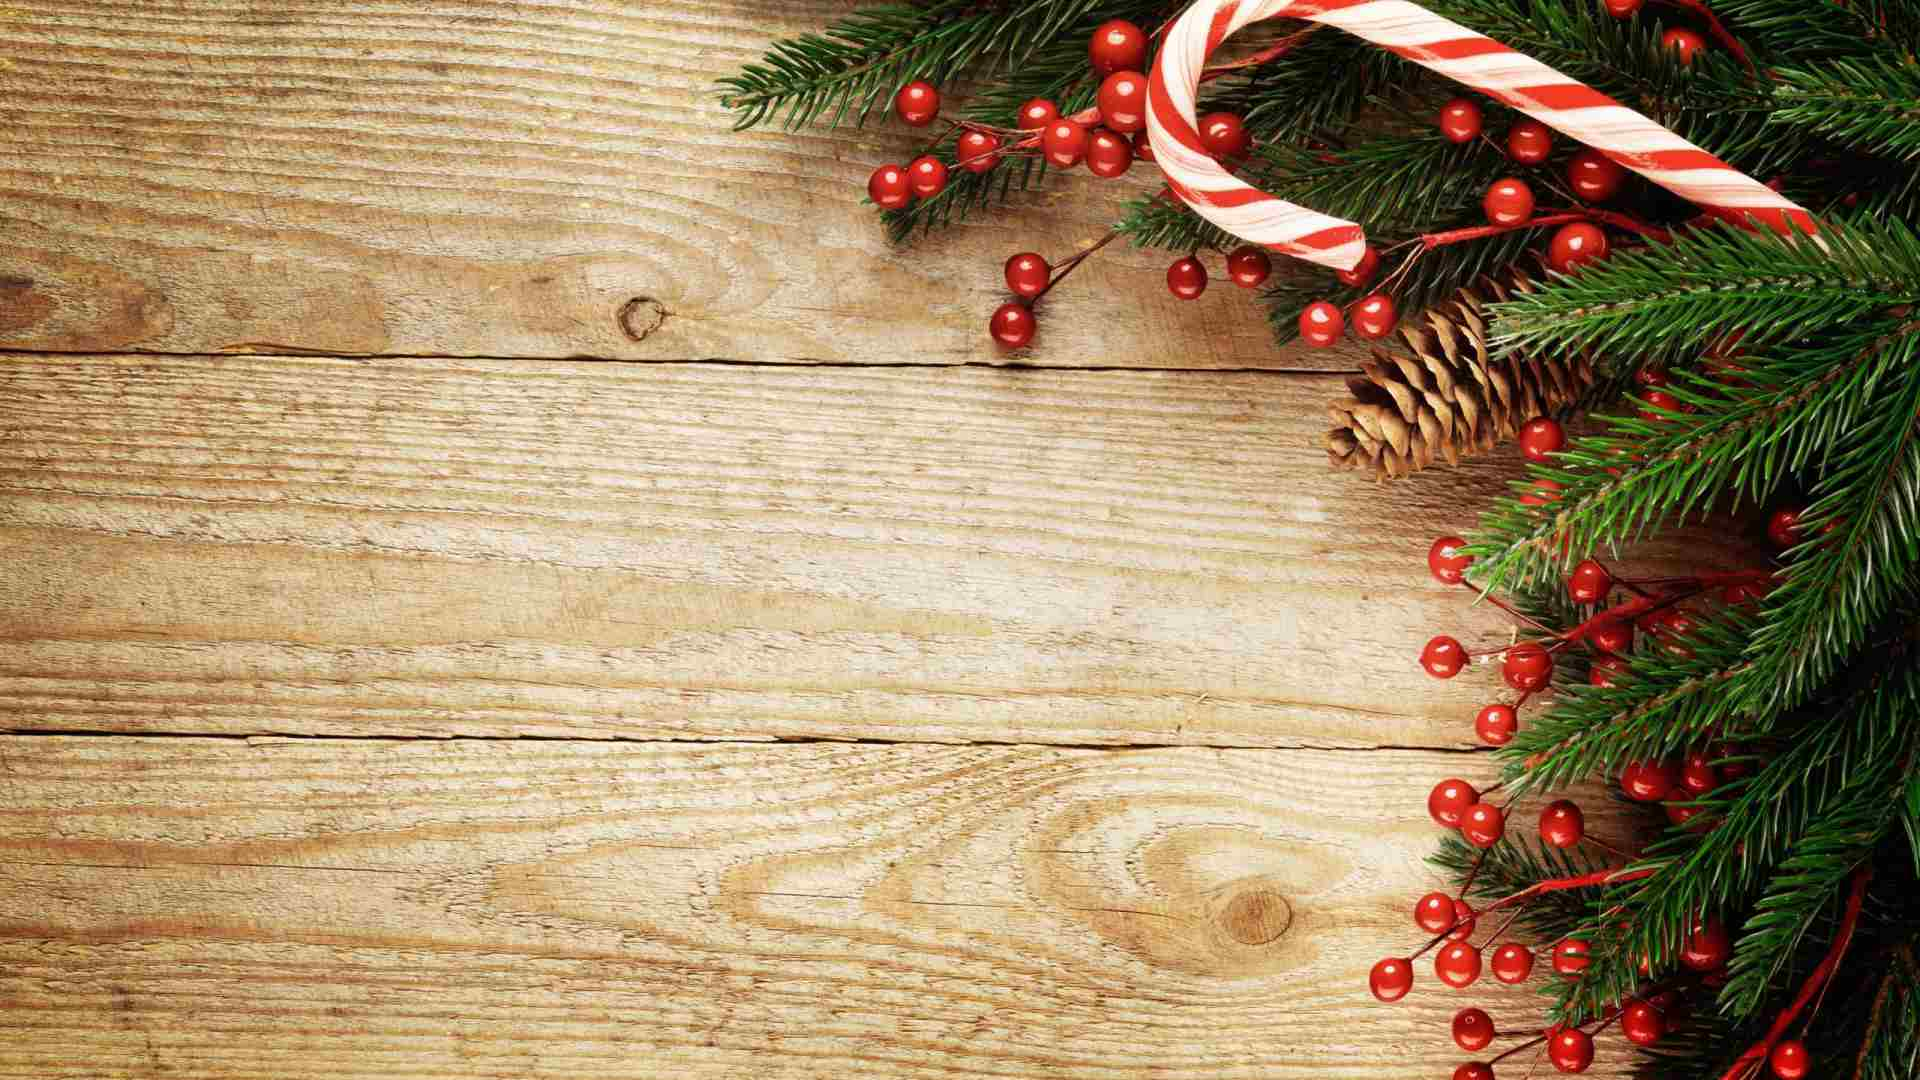 The Top 27 Free Christmas Wallpapers